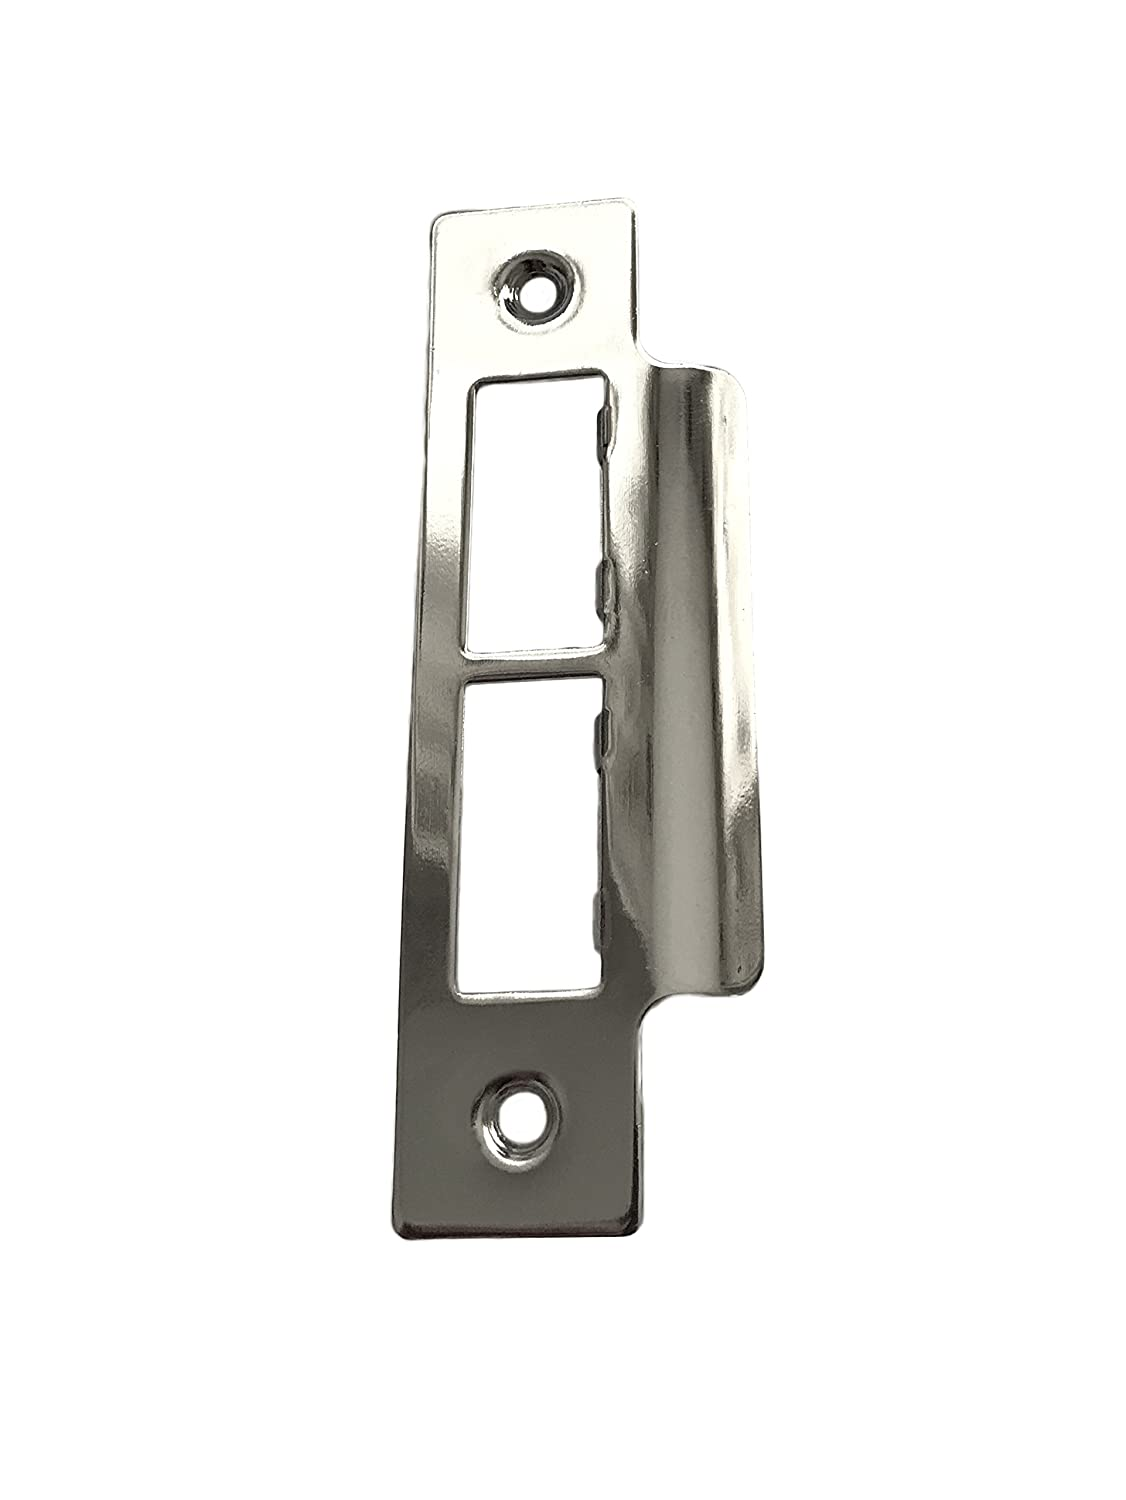 5 x Long Strike Plates for Mortice Locks - Nickel Plated Fasteners-Store